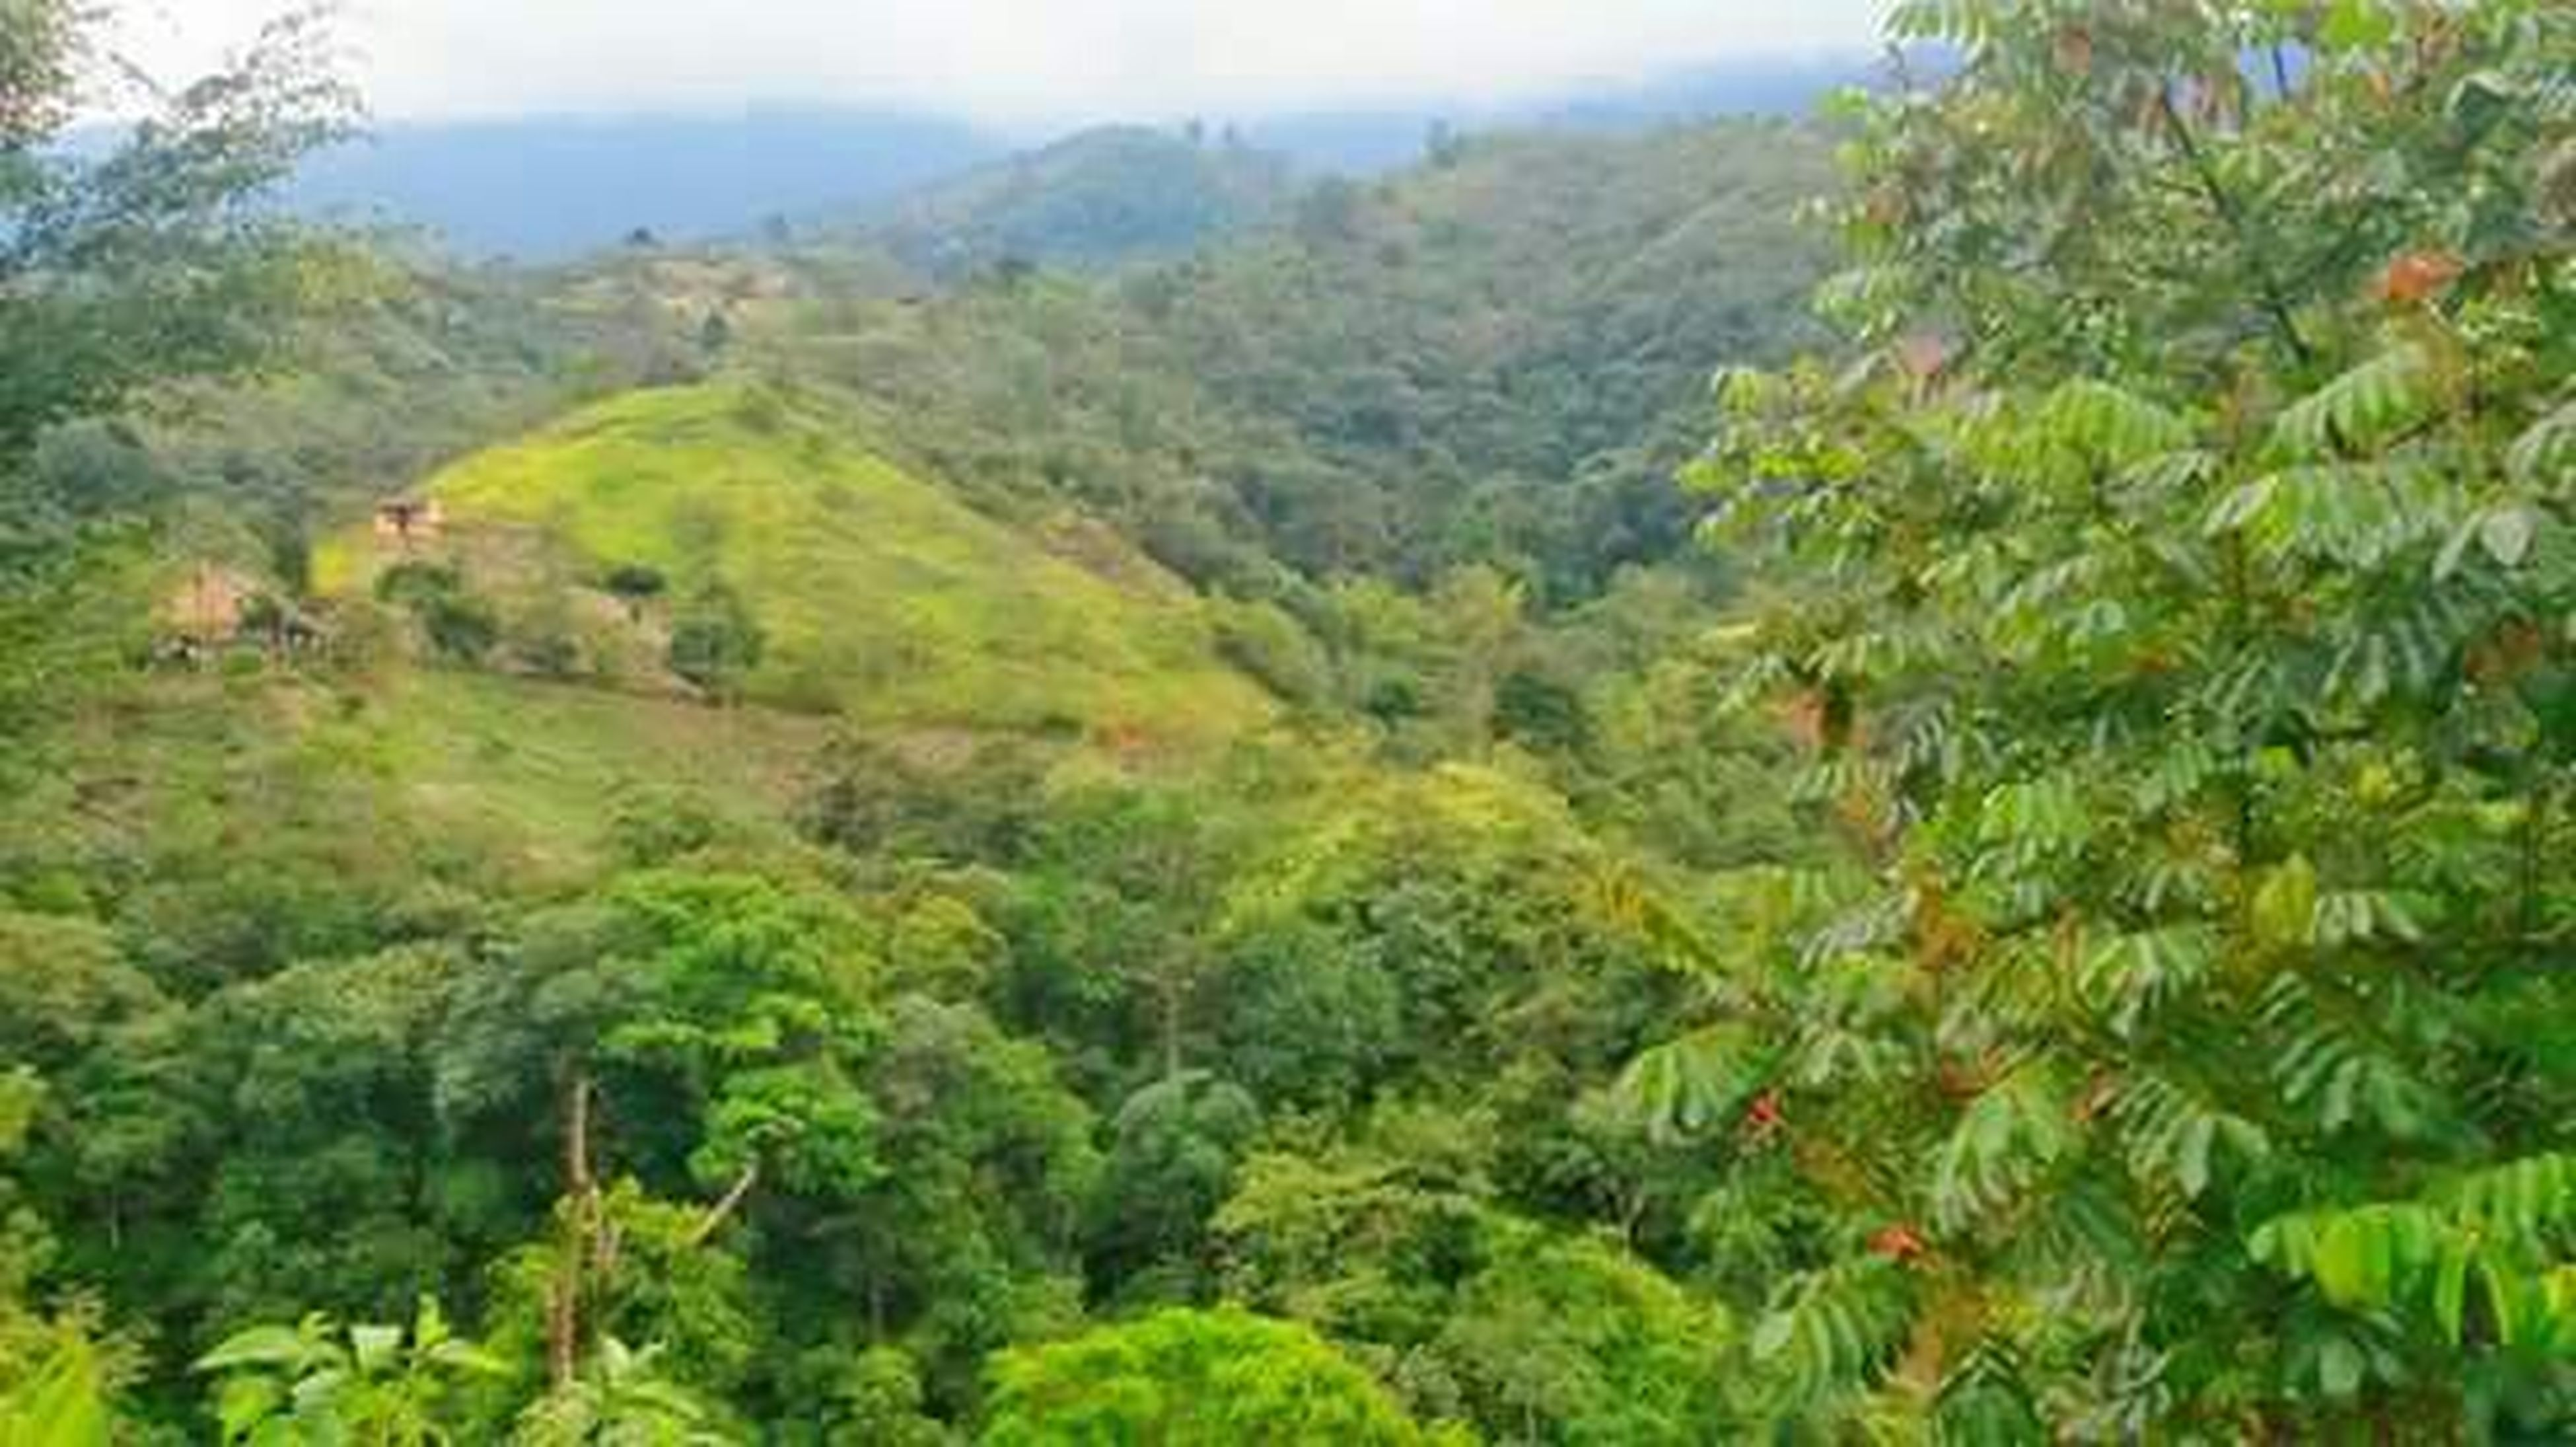 mountain, tree, tranquil scene, tranquility, green color, scenics, beauty in nature, lush foliage, nature, growth, landscape, mountain range, forest, non-urban scene, idyllic, green, valley, sky, day, high angle view